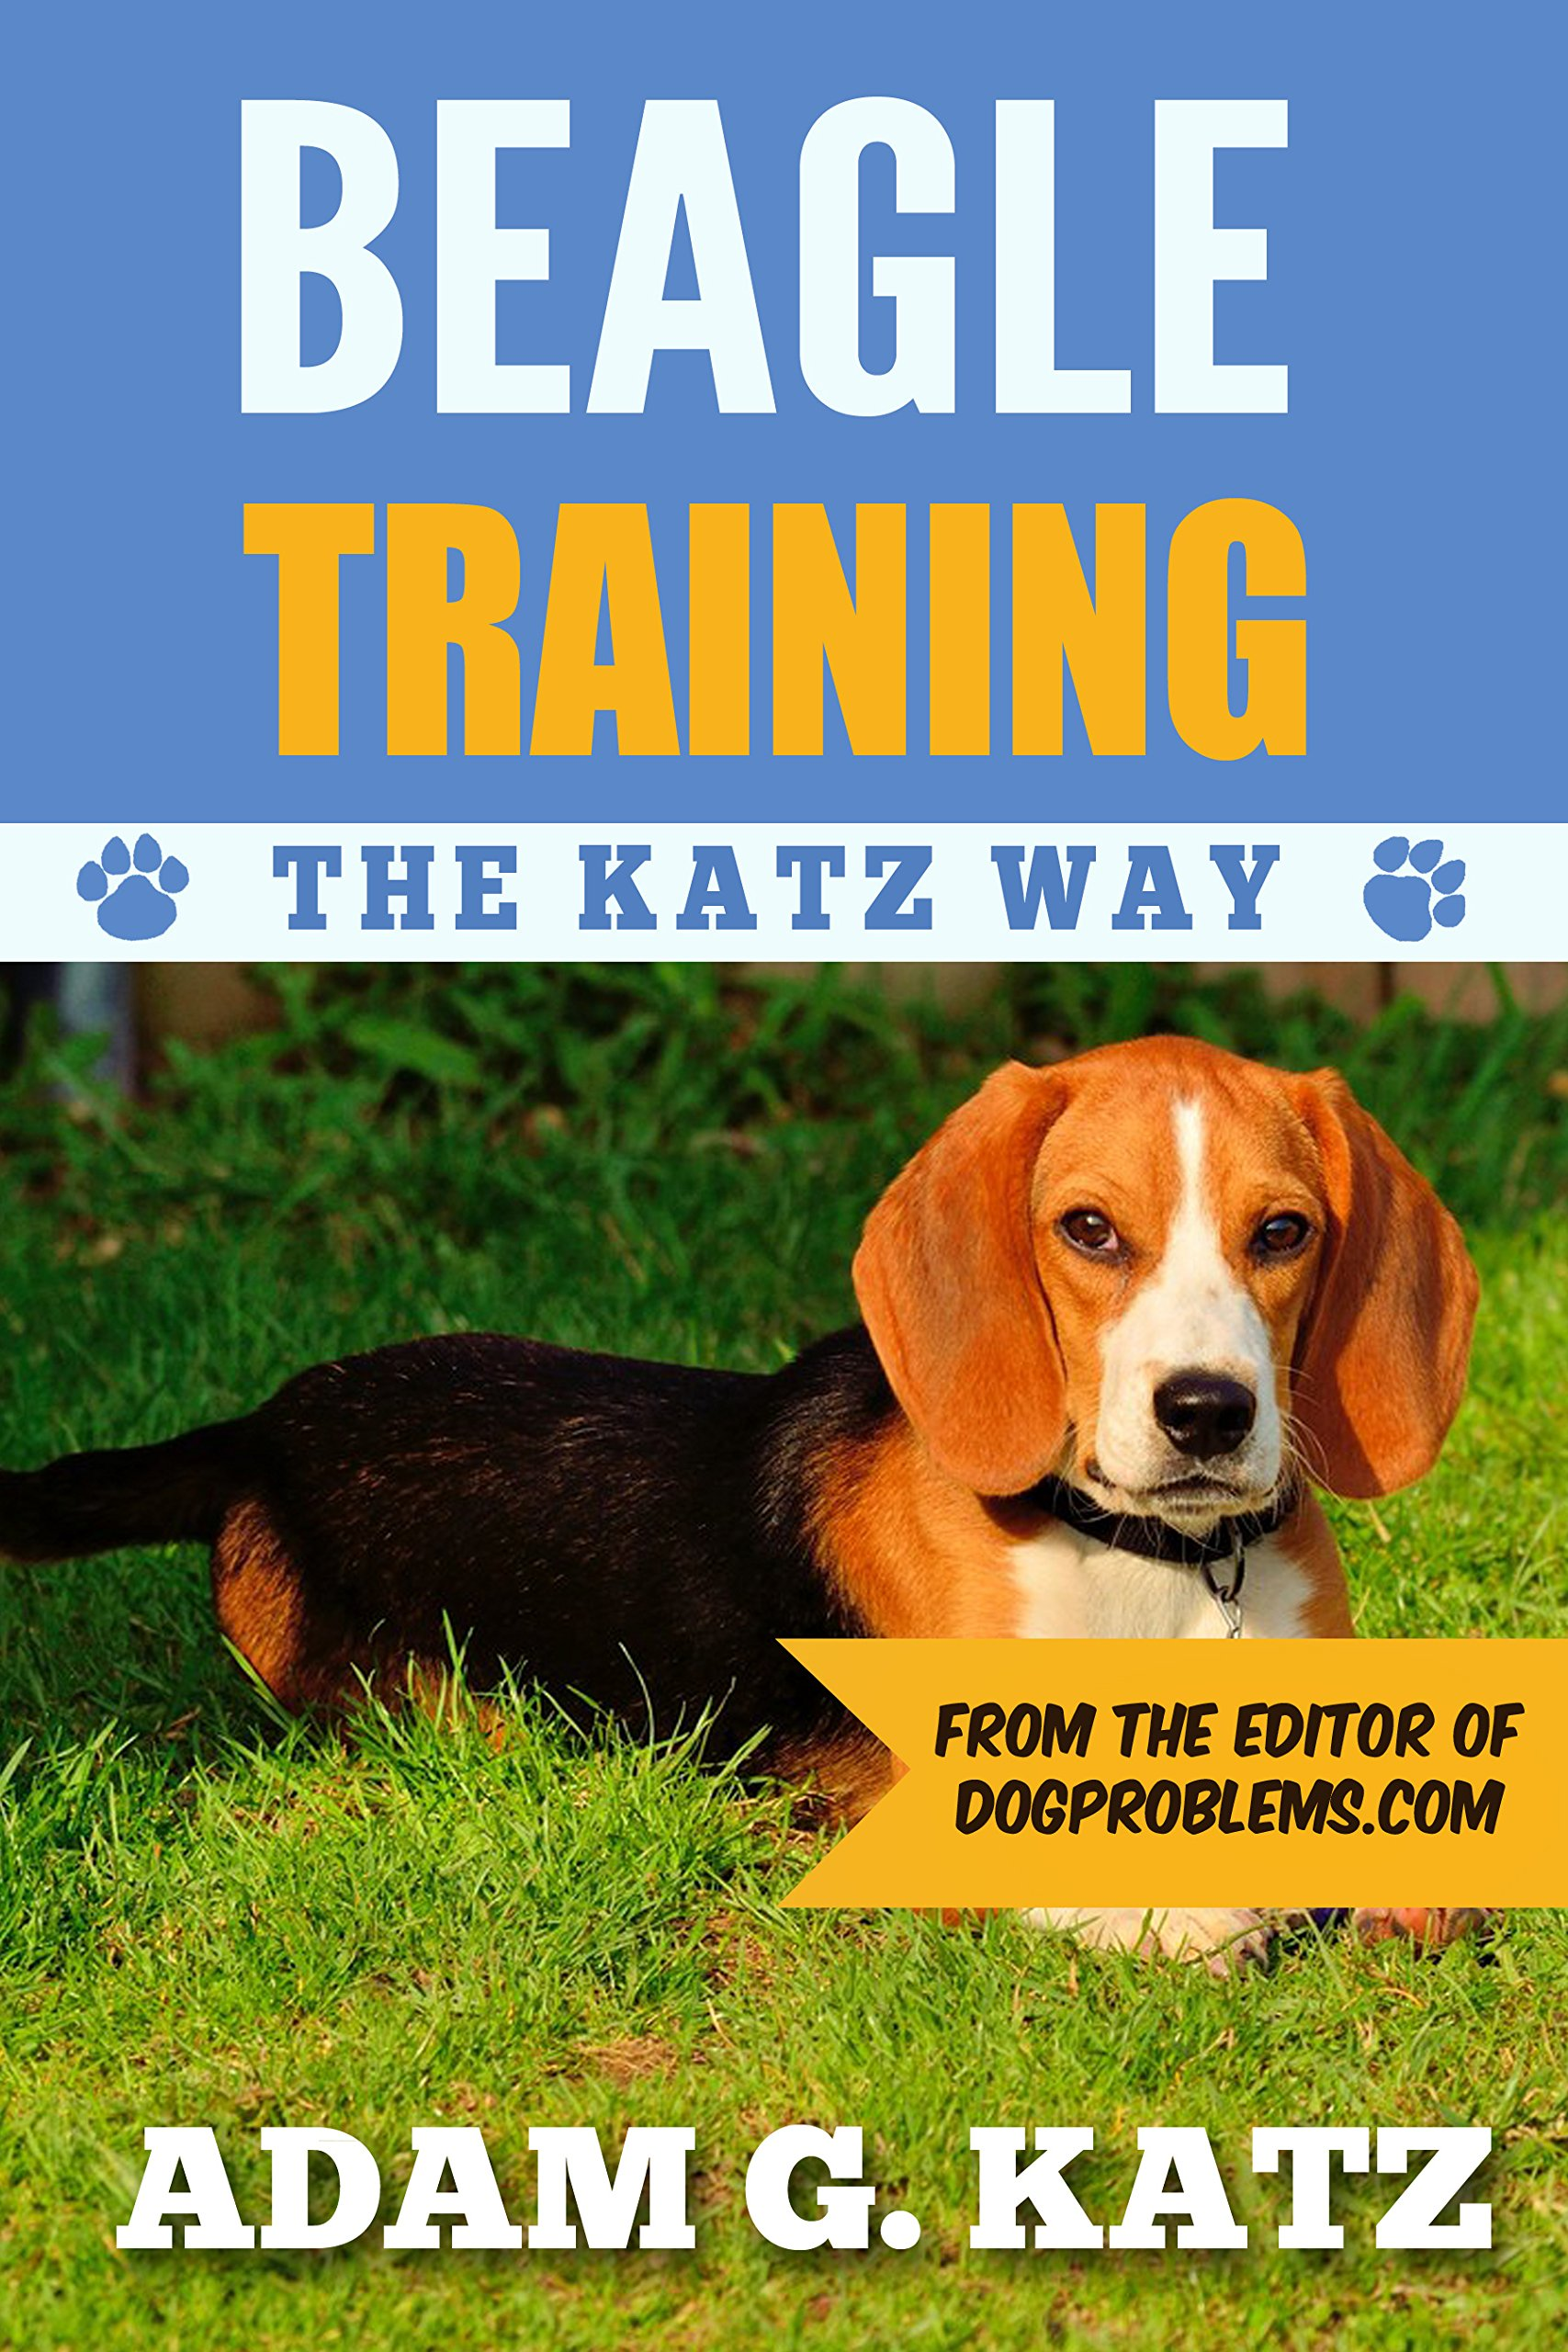 Beagle Training: The Katz Way